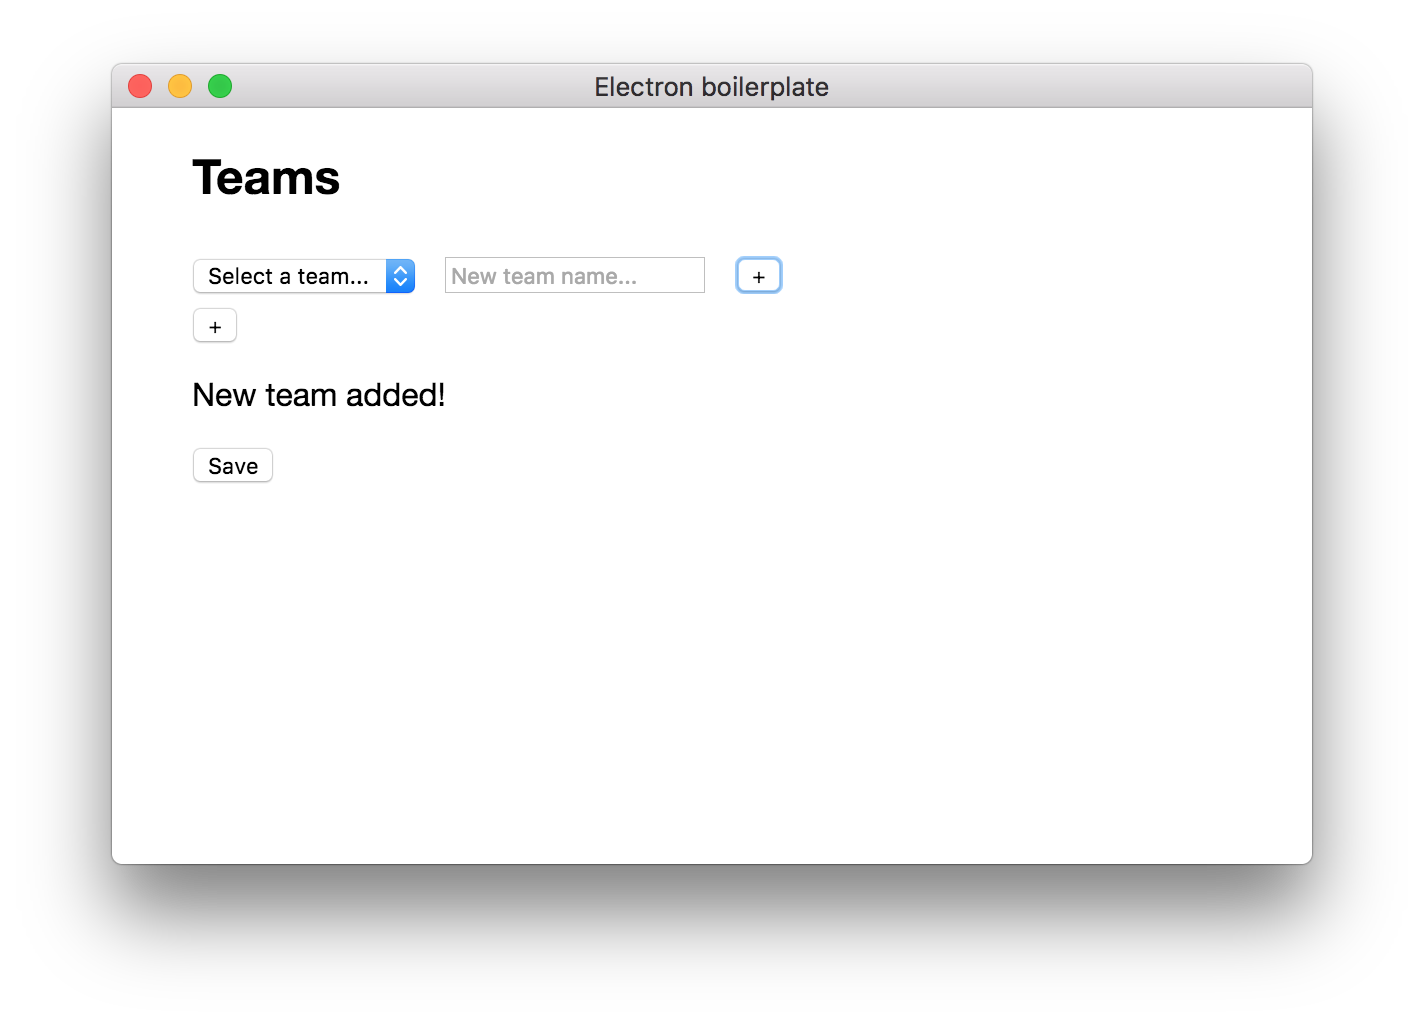 The 'New team added!' success message